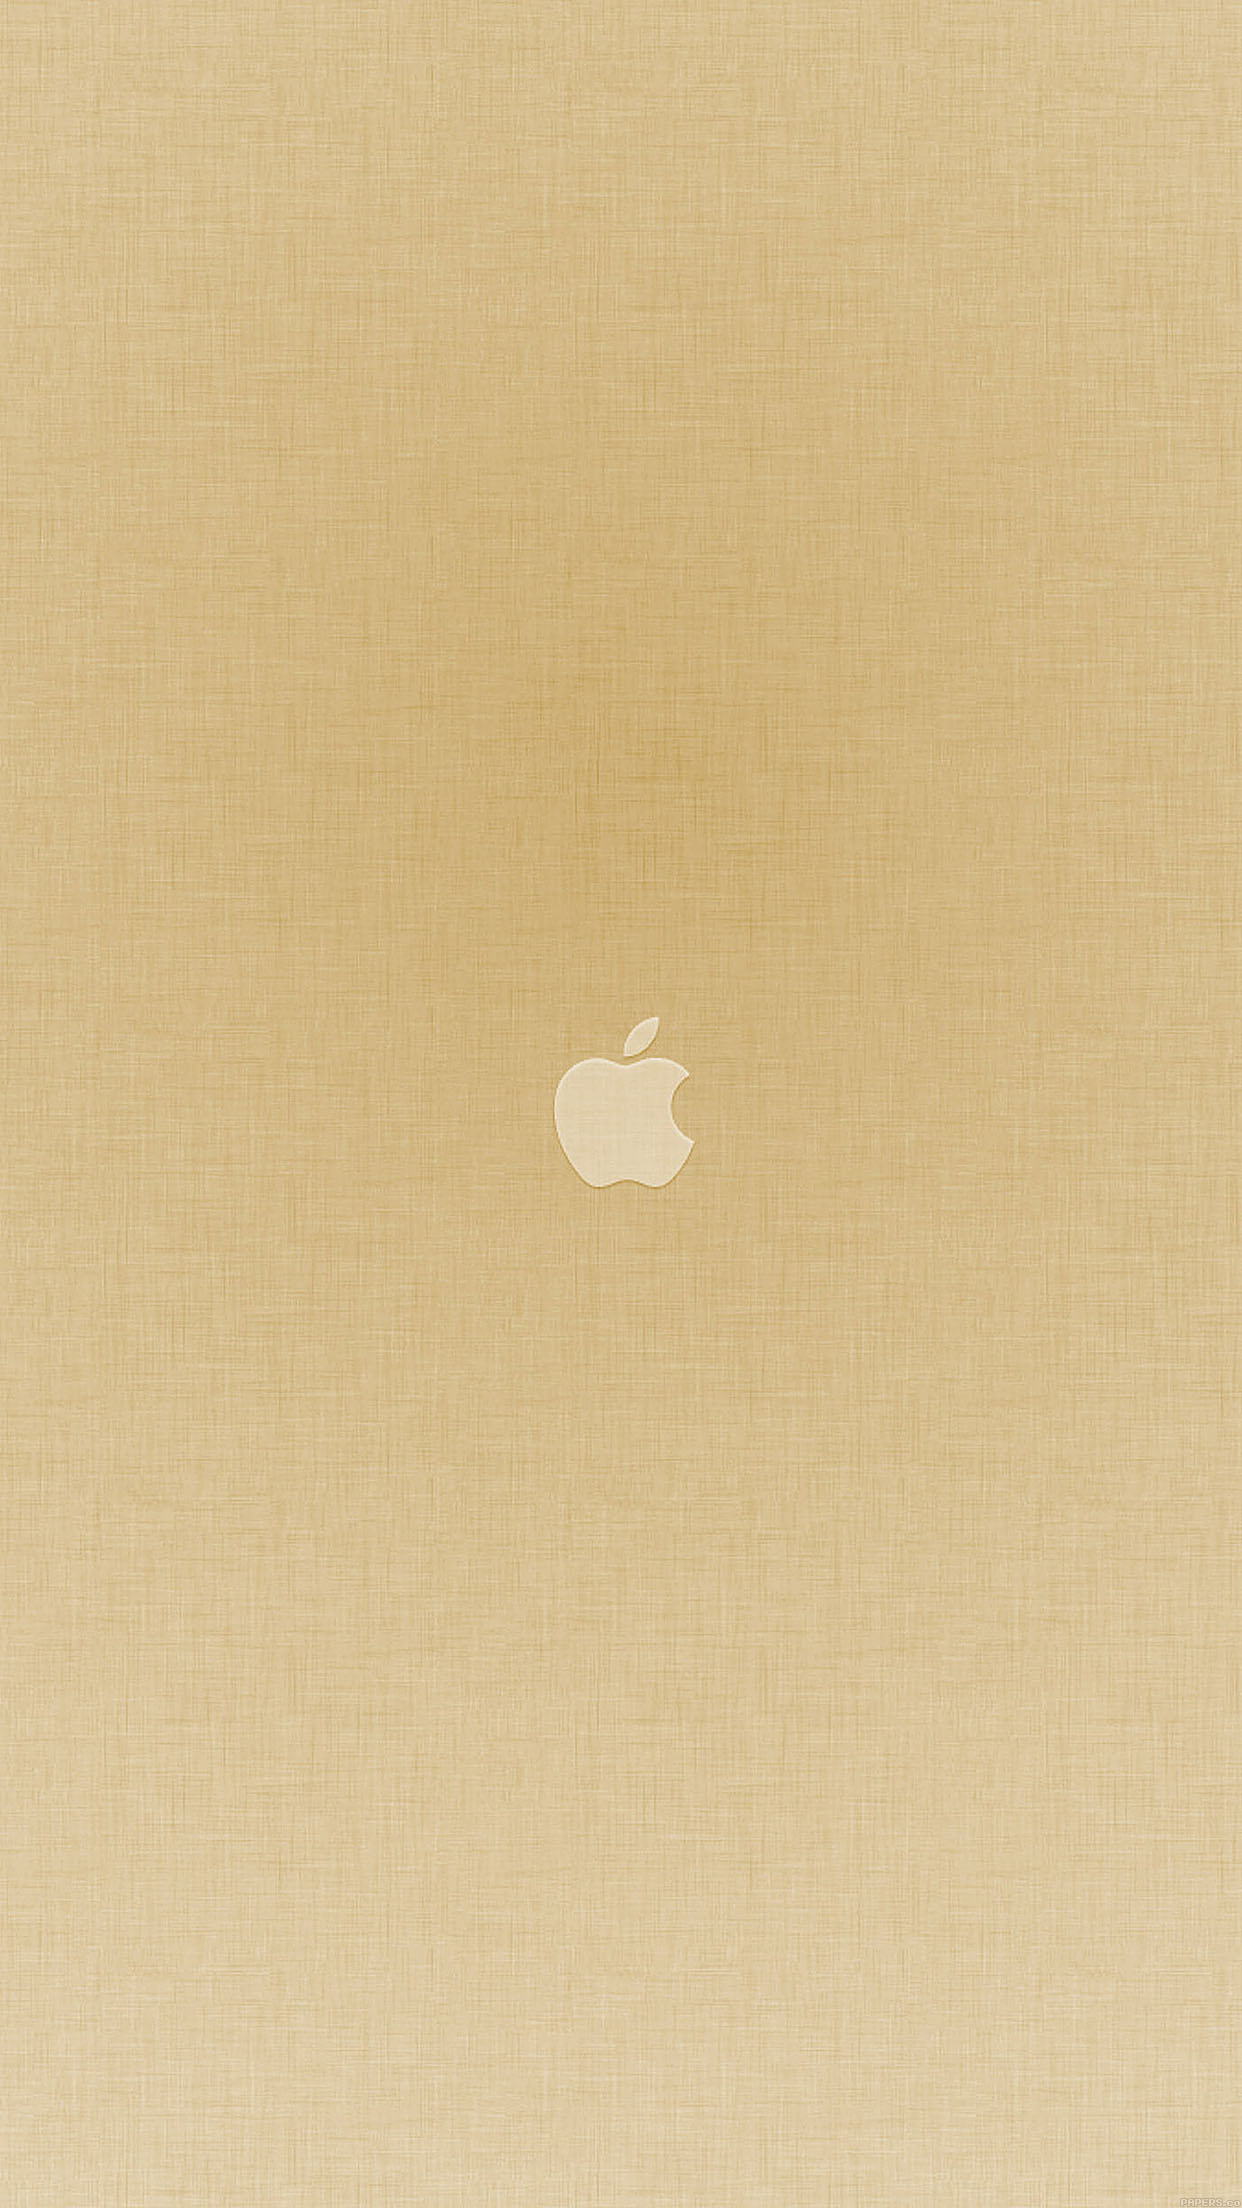 va19-tiny-apple-gold-minimal, Hd wallpaper, iPhone 6, iPhone 6 plus ...